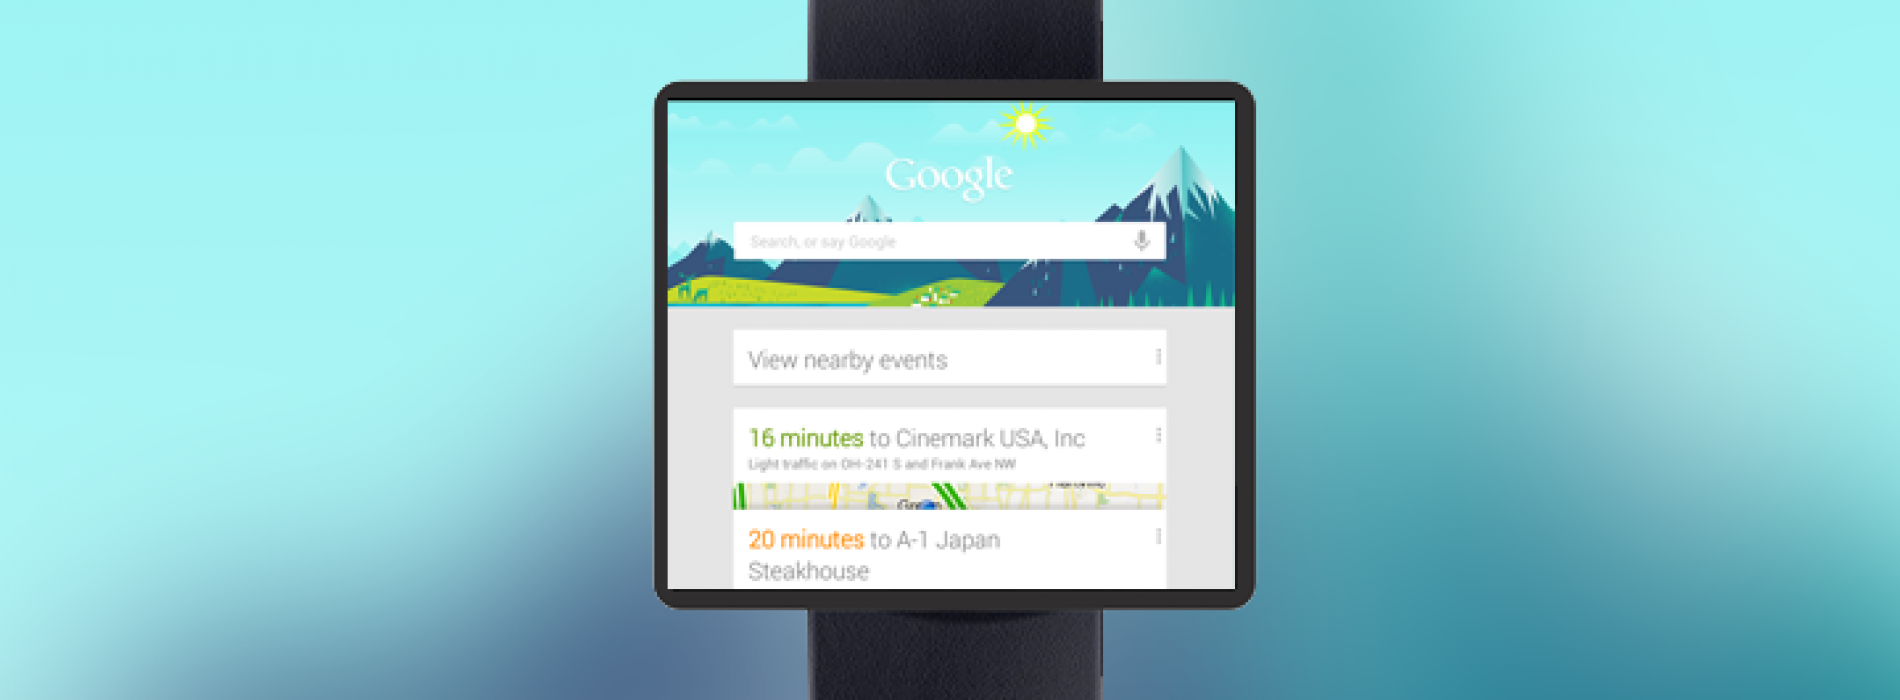 Imagine how cool a Google Now smart watch would be